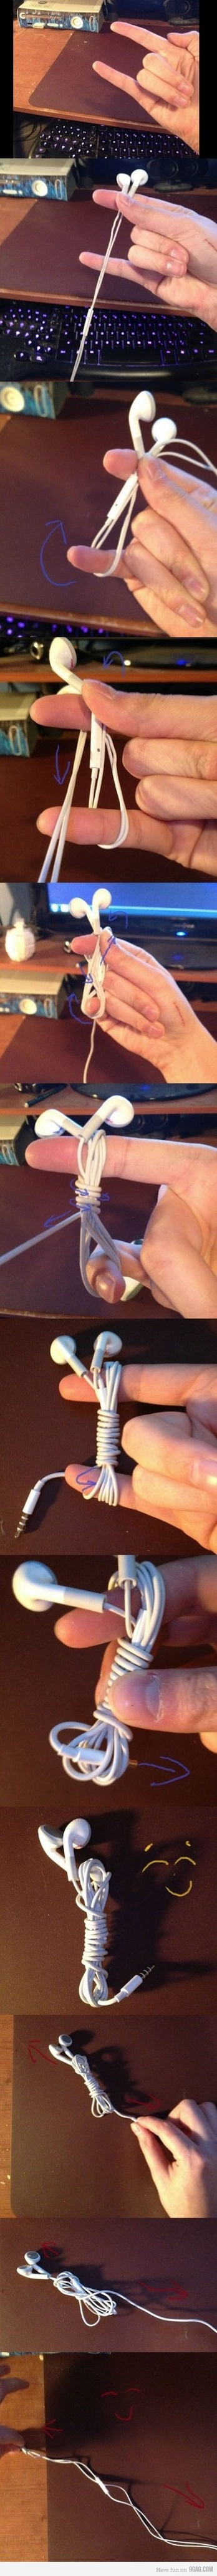 hmm so thats how to keep my headphones normal lol